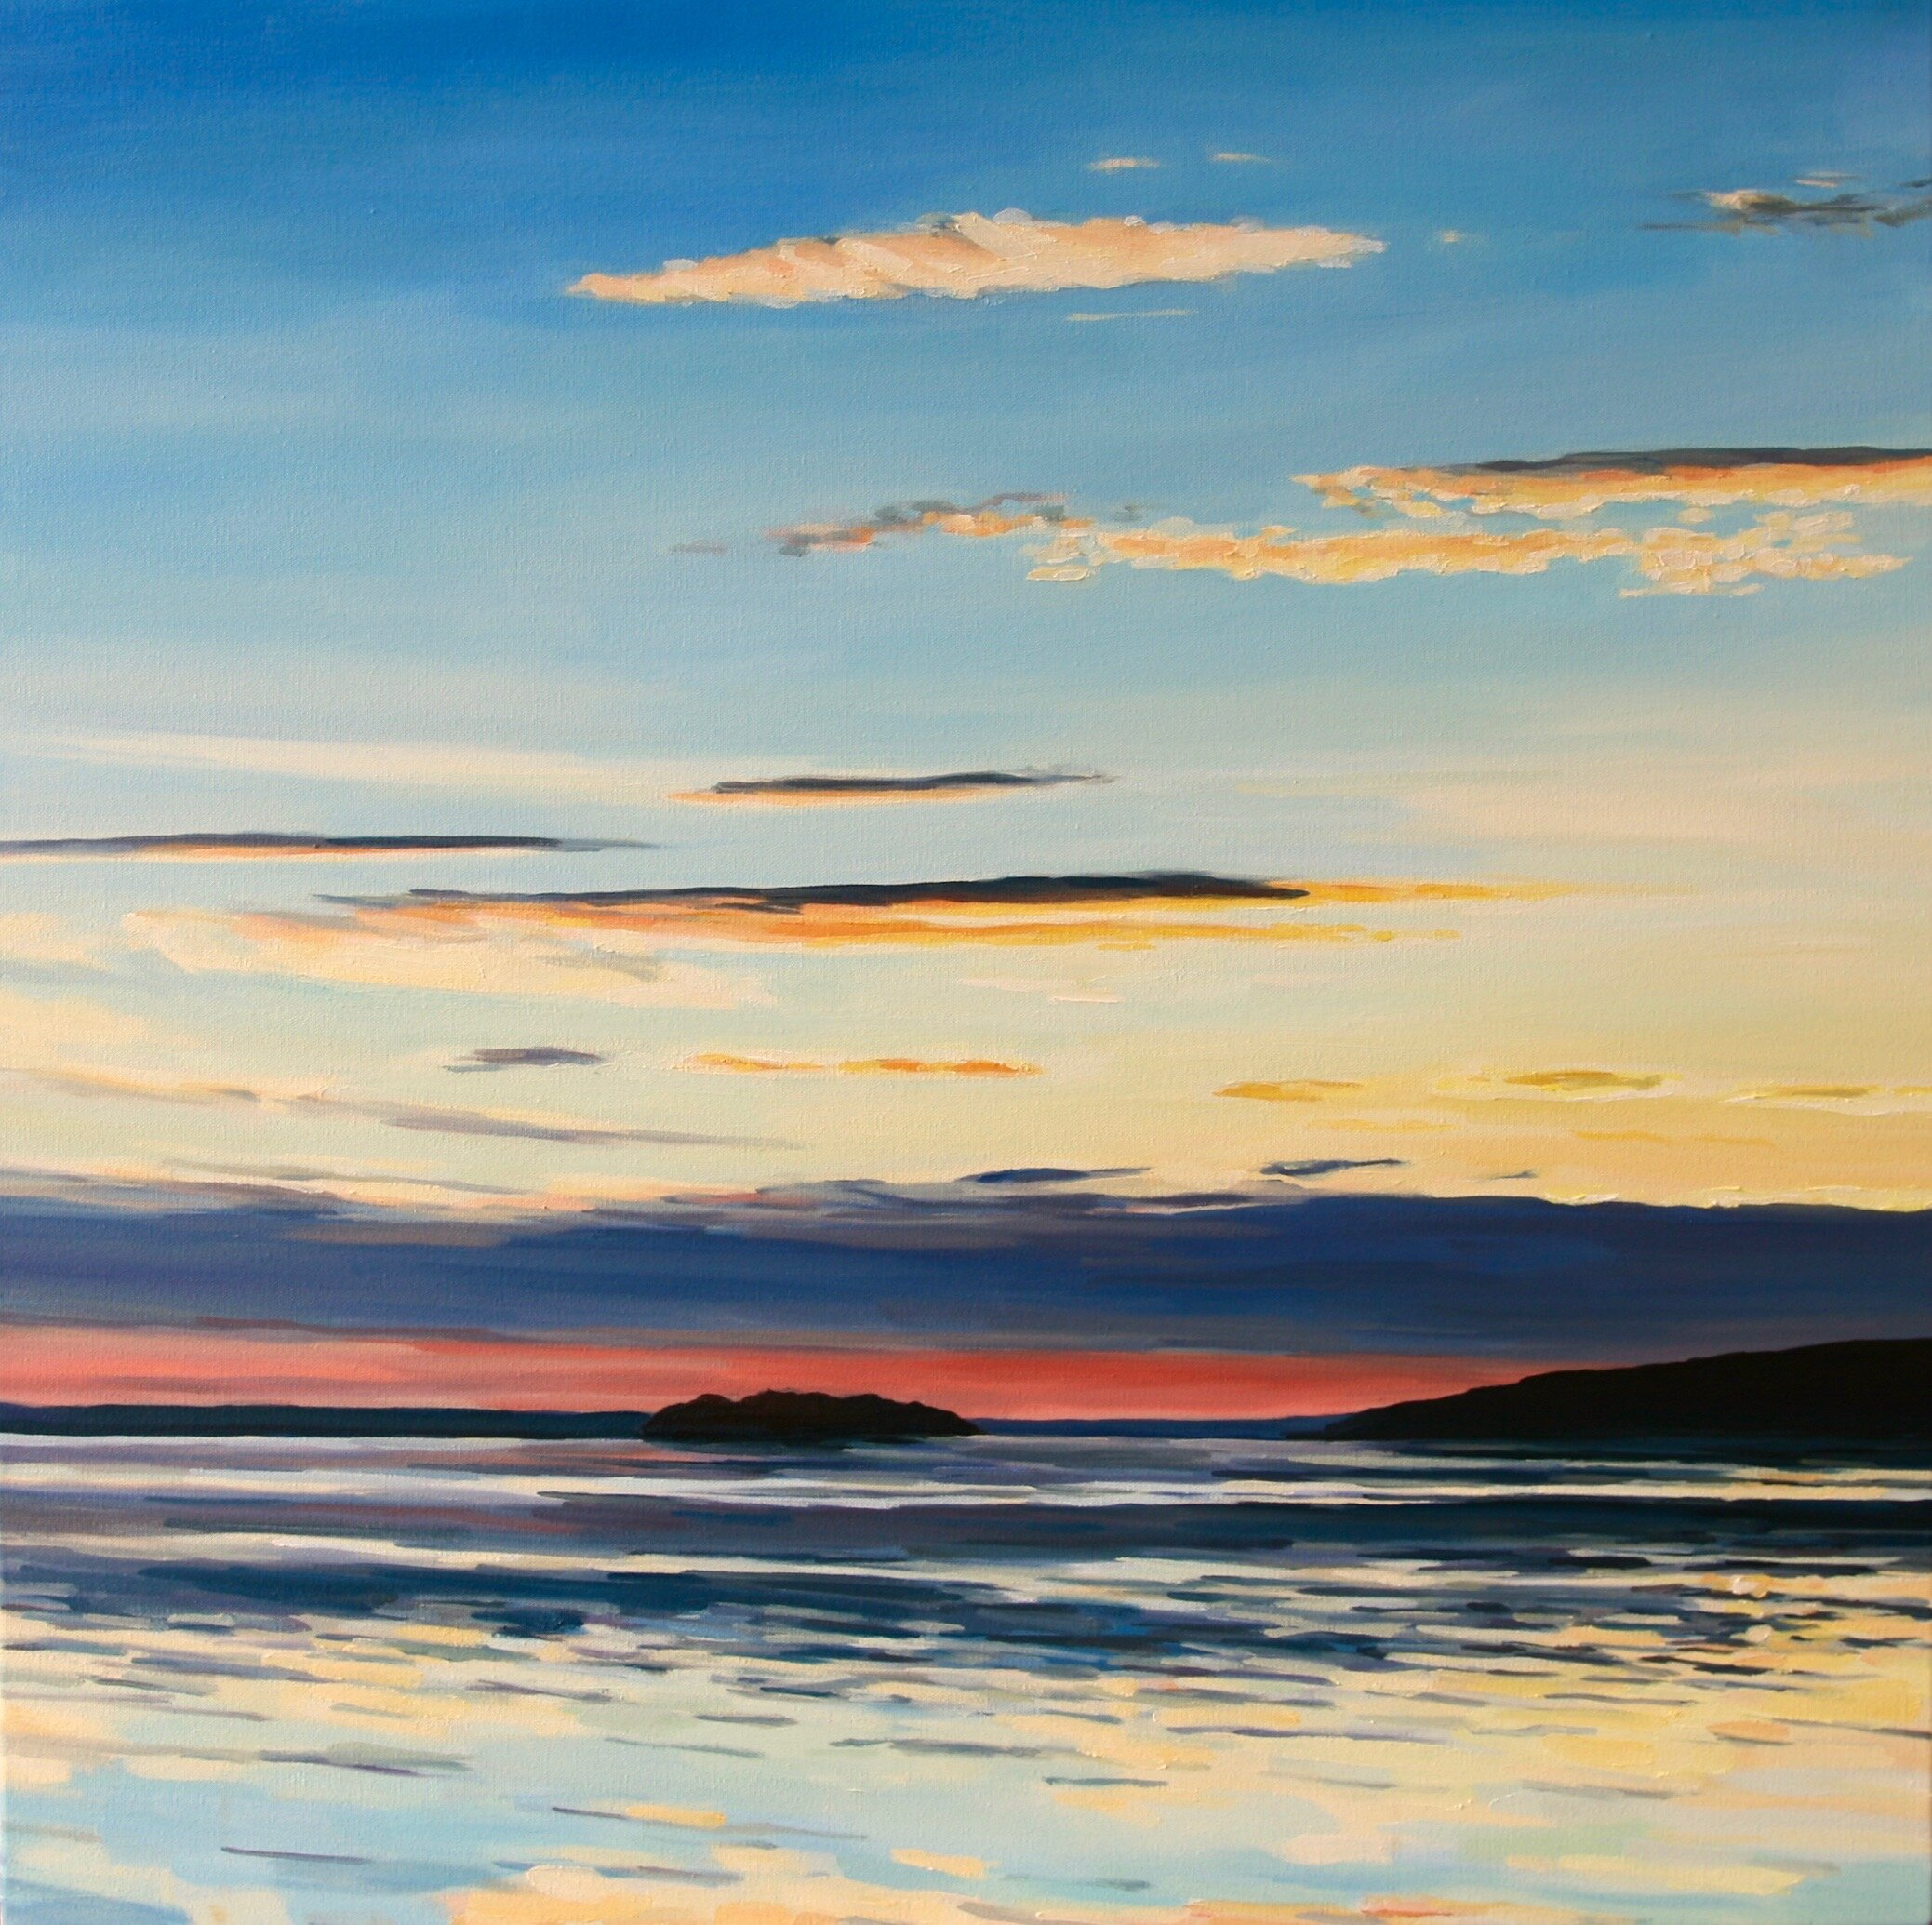 """'Camano'  2019  30"""" x 30""""  water soluble oil on canvas  sold"""